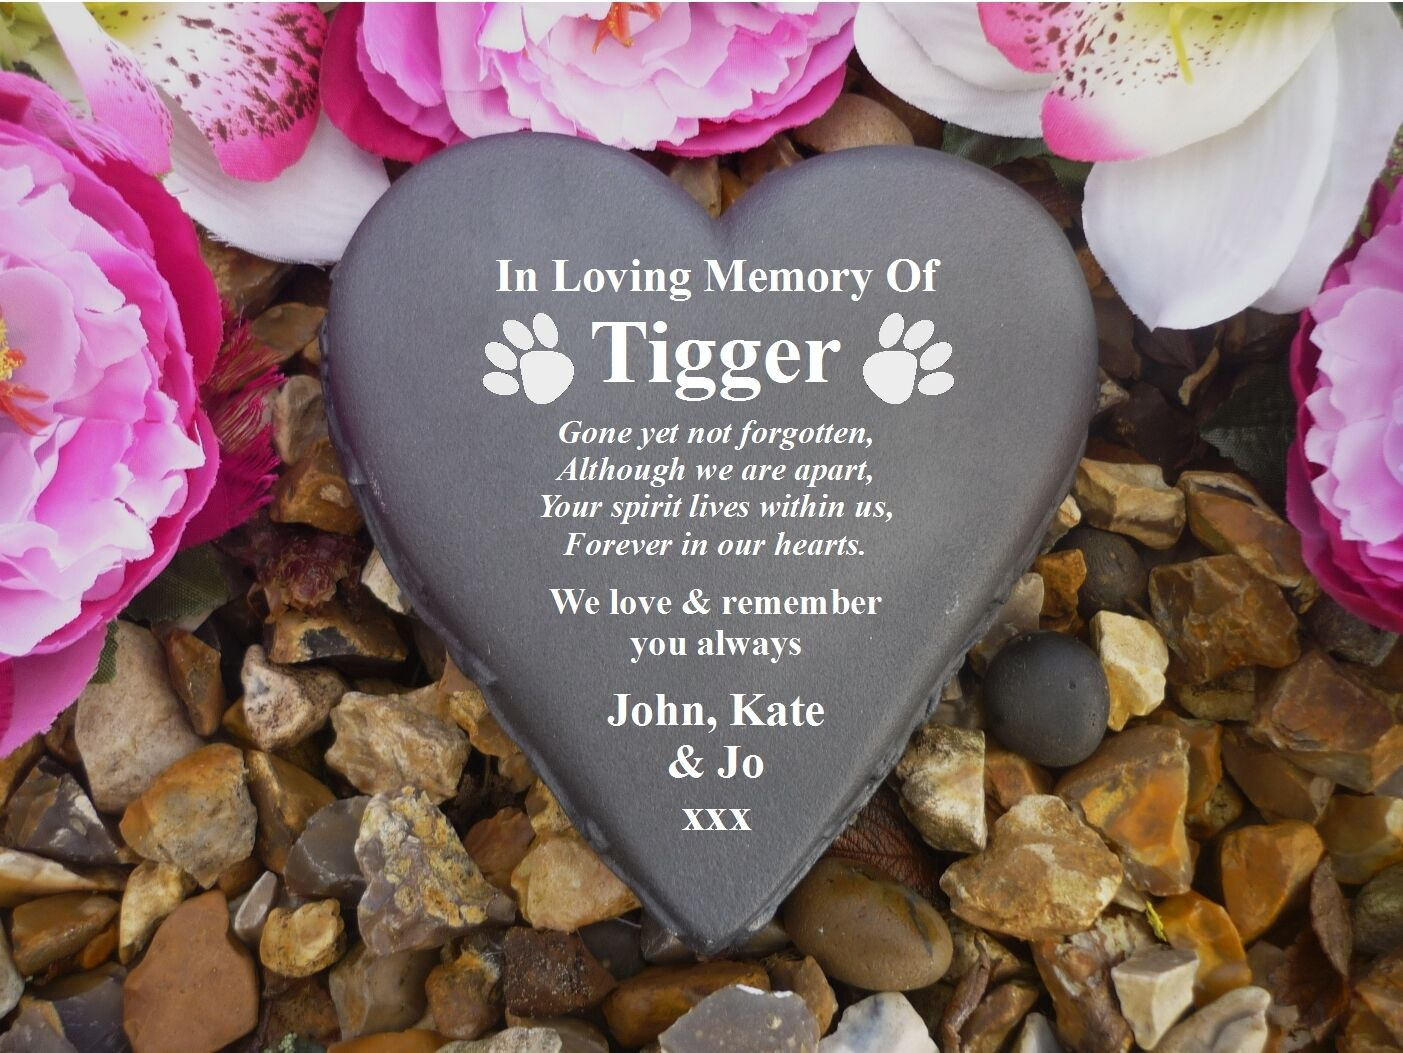 Pet Dog Memorial - Personalised Stone Floral Heart (Stone Effect) Paw Prints